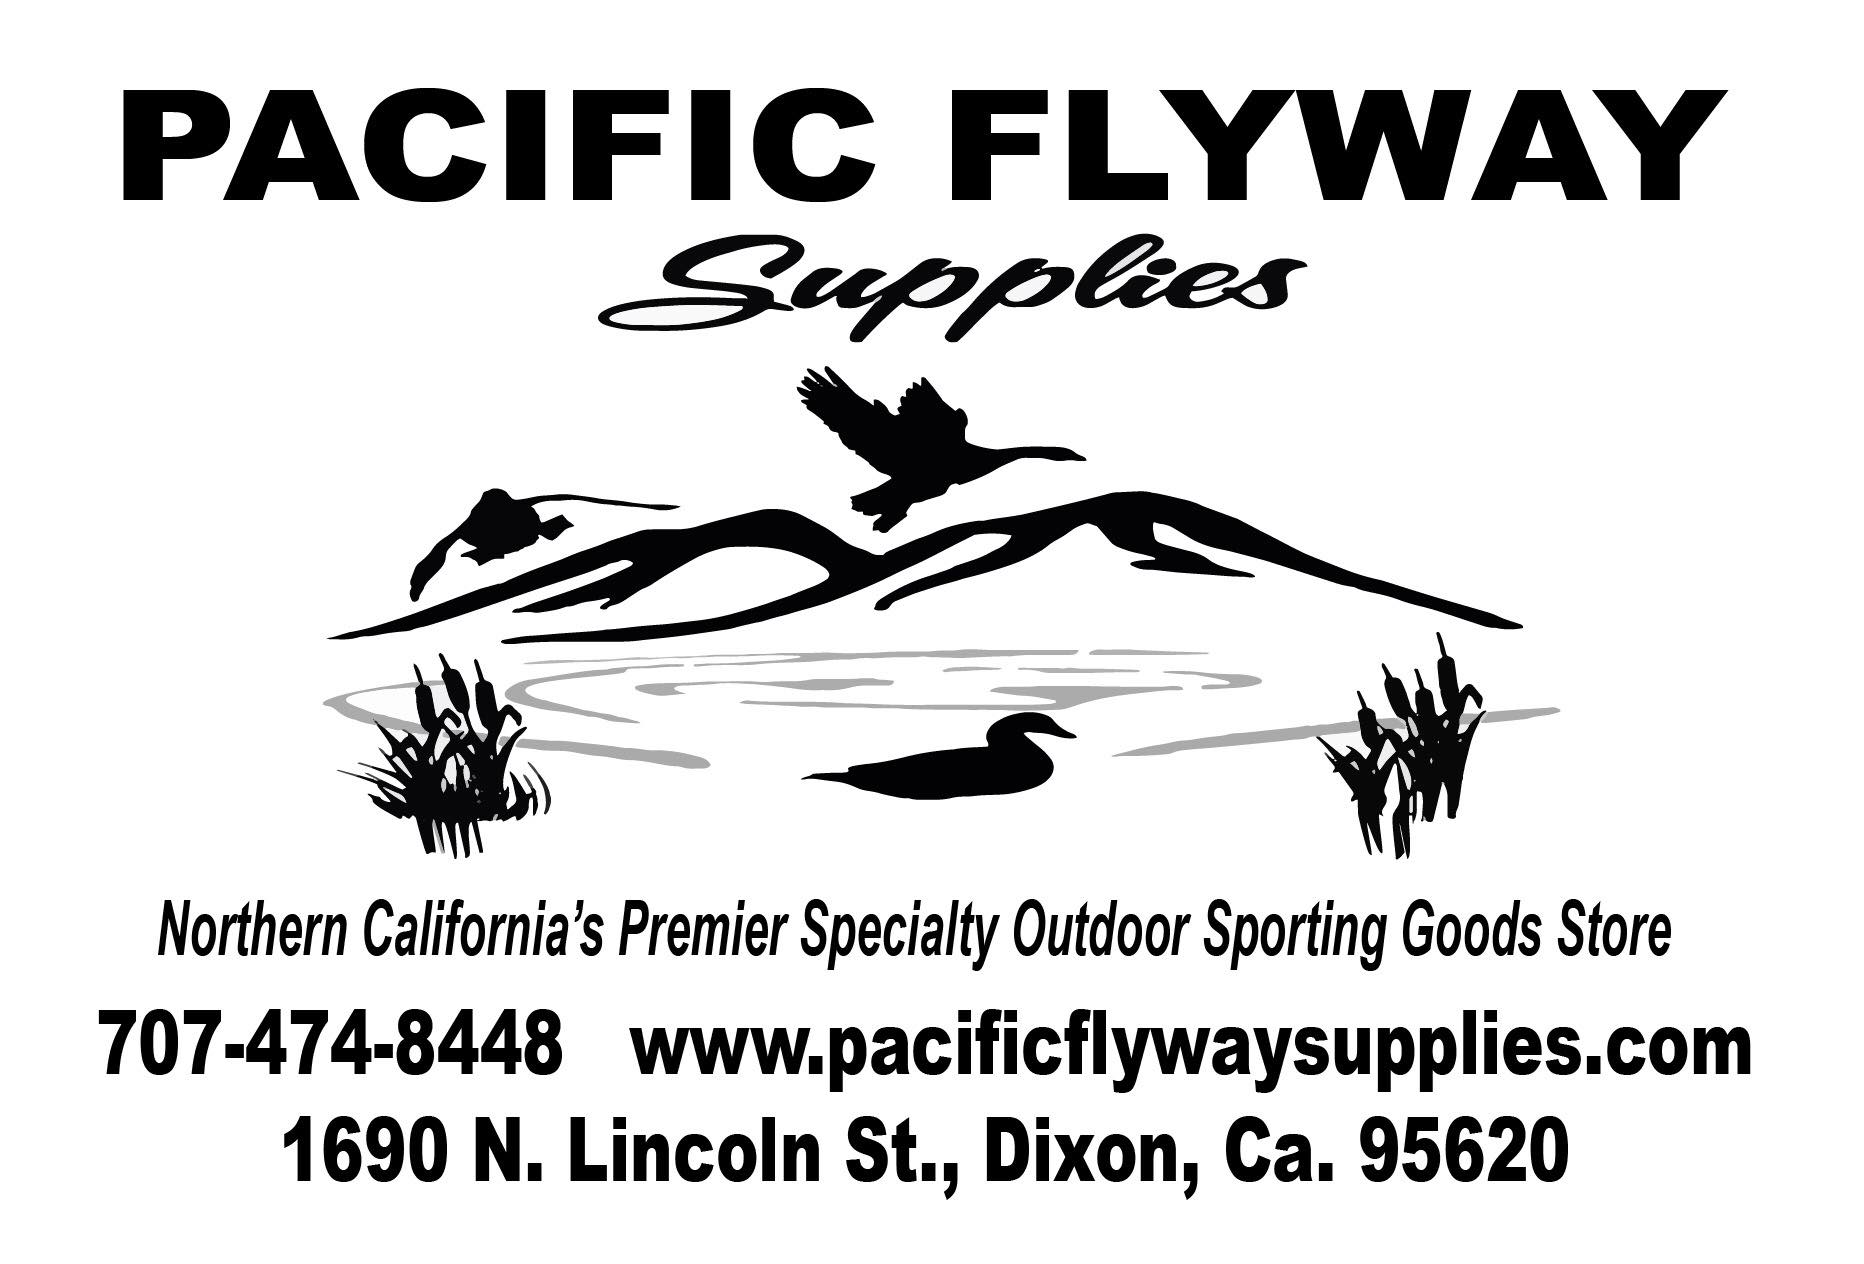 Pacific Flyway Supplies Redding Sportsman's Expo Hunting and Fishing Show